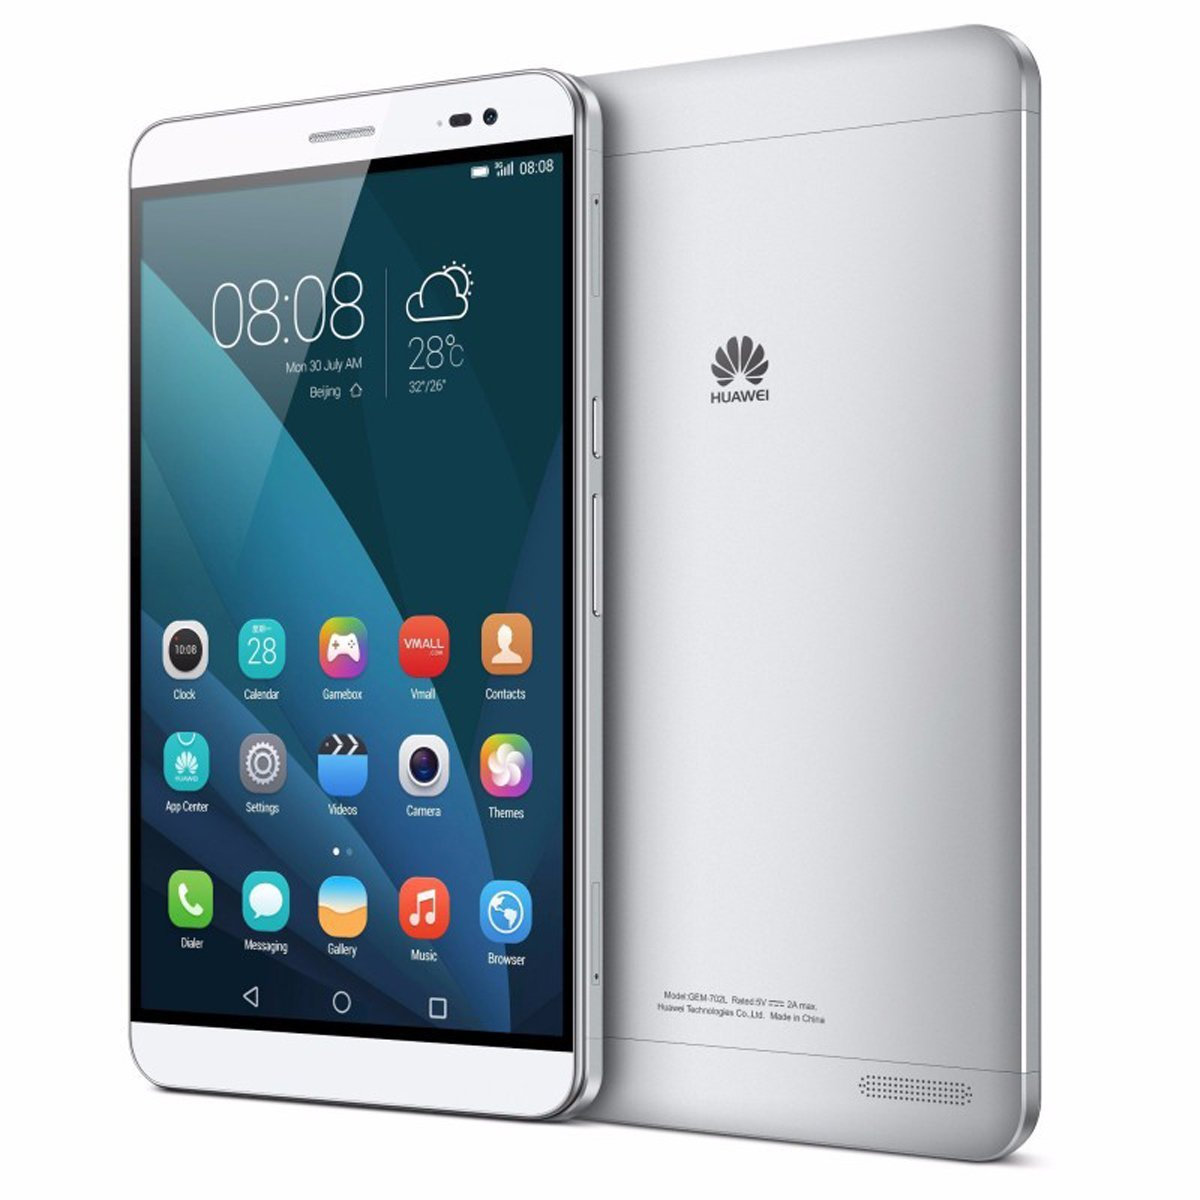 Huawei Honor X2 Gem 703l Specs Pdevice Com Review